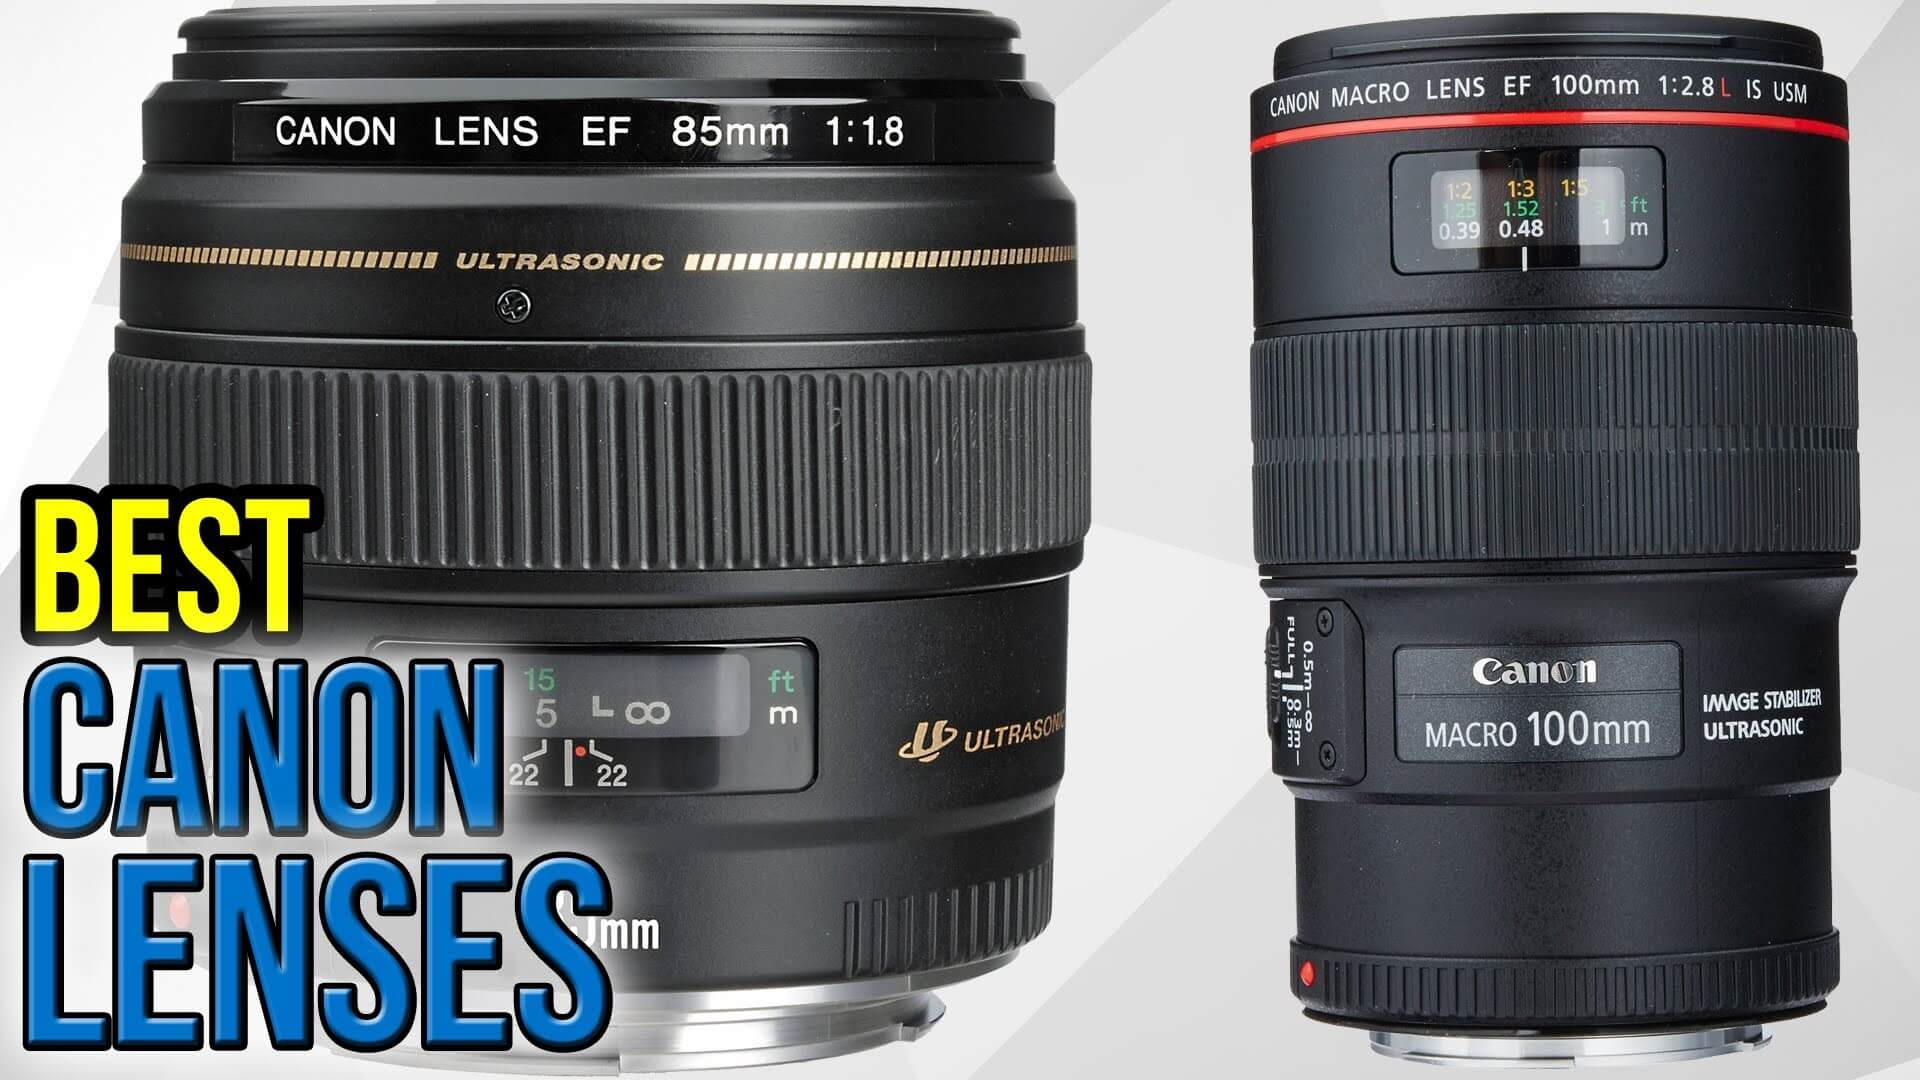 Best Canon Lens for Portraits and Wedding Photography